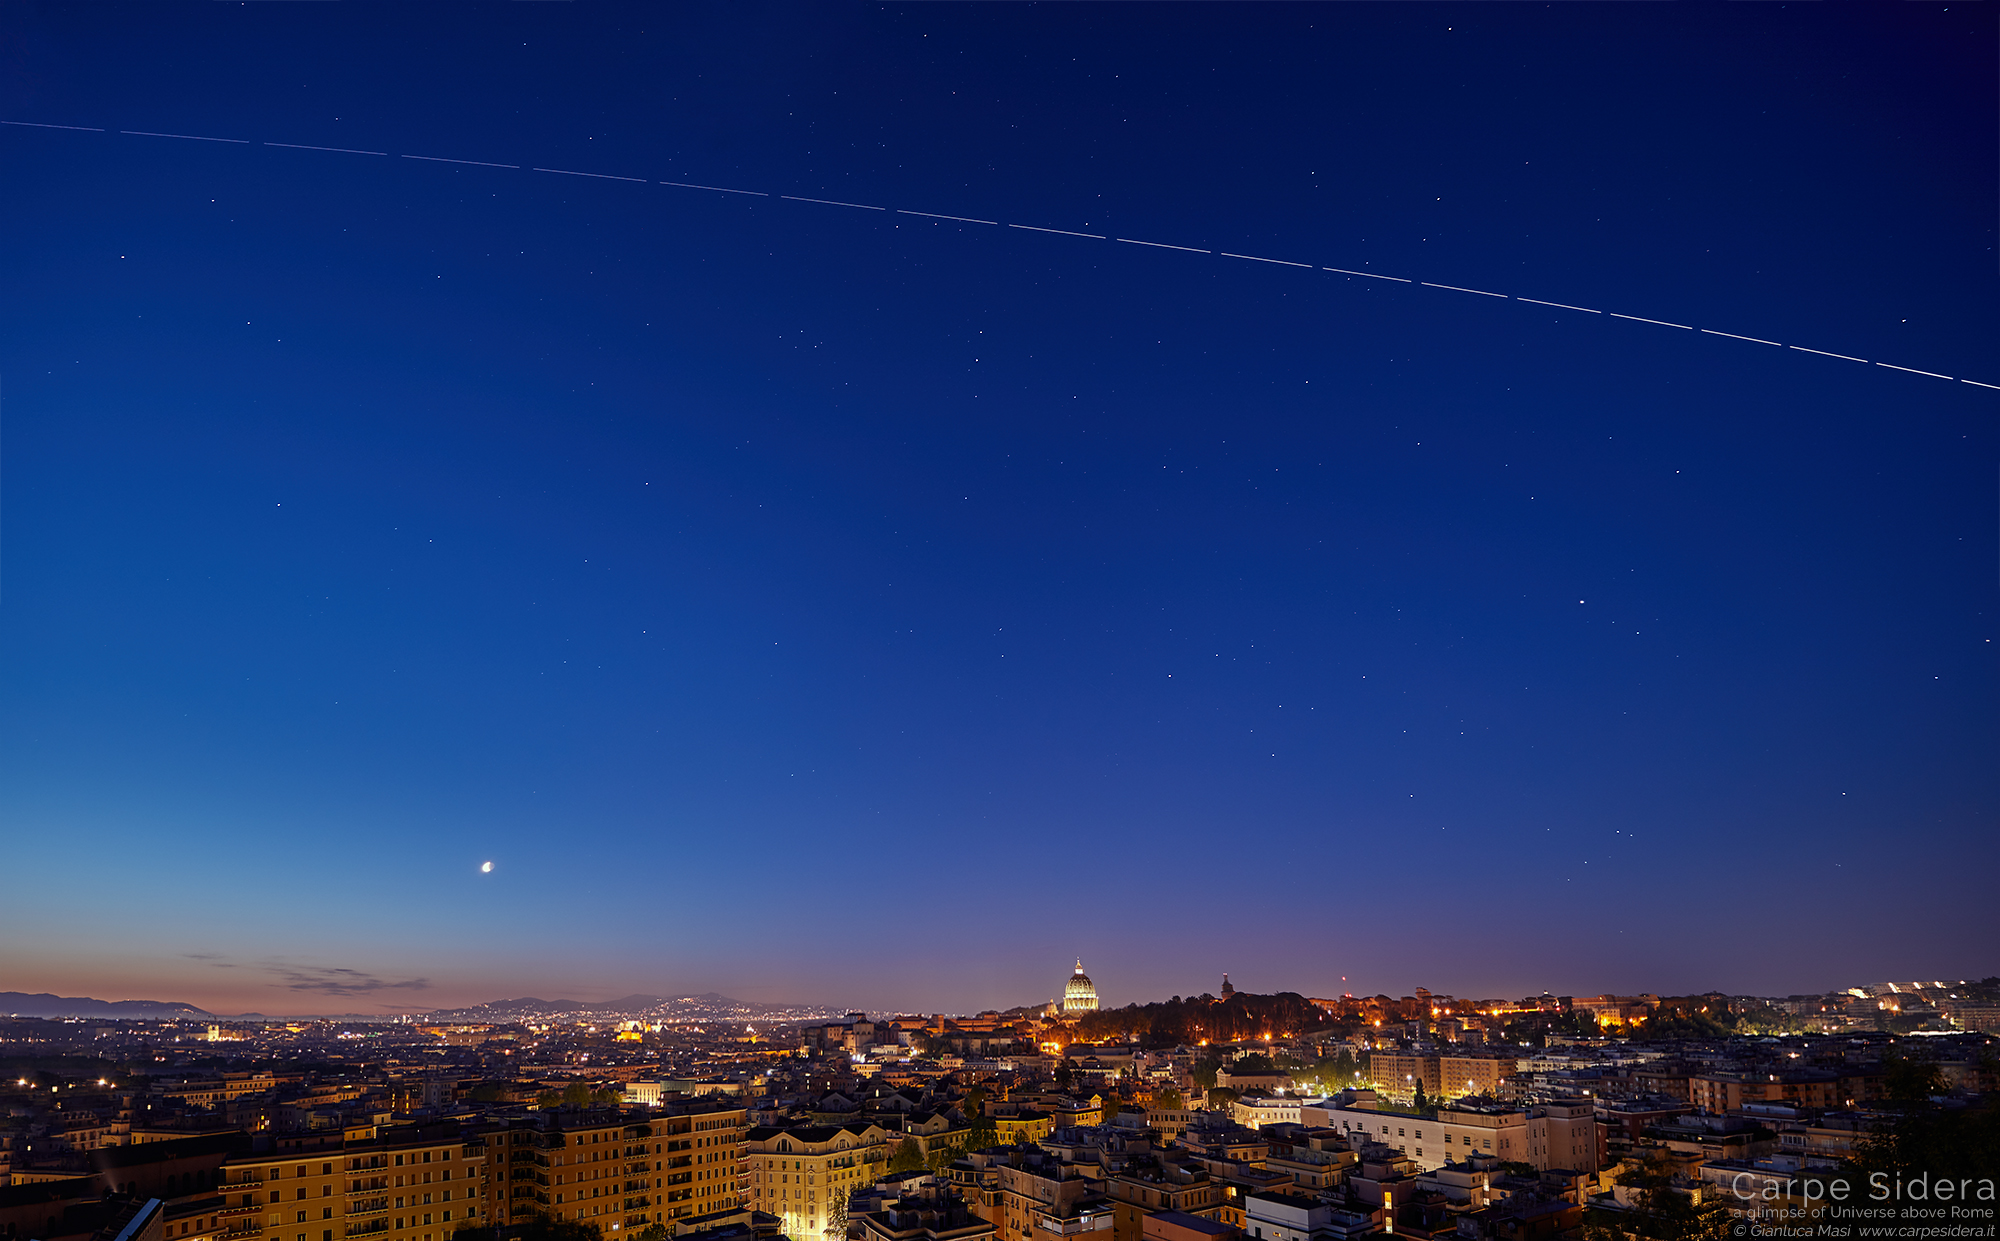 The International Space Station (ISS) crosses the sky above Rome at dawn - 30 Apr. 2019